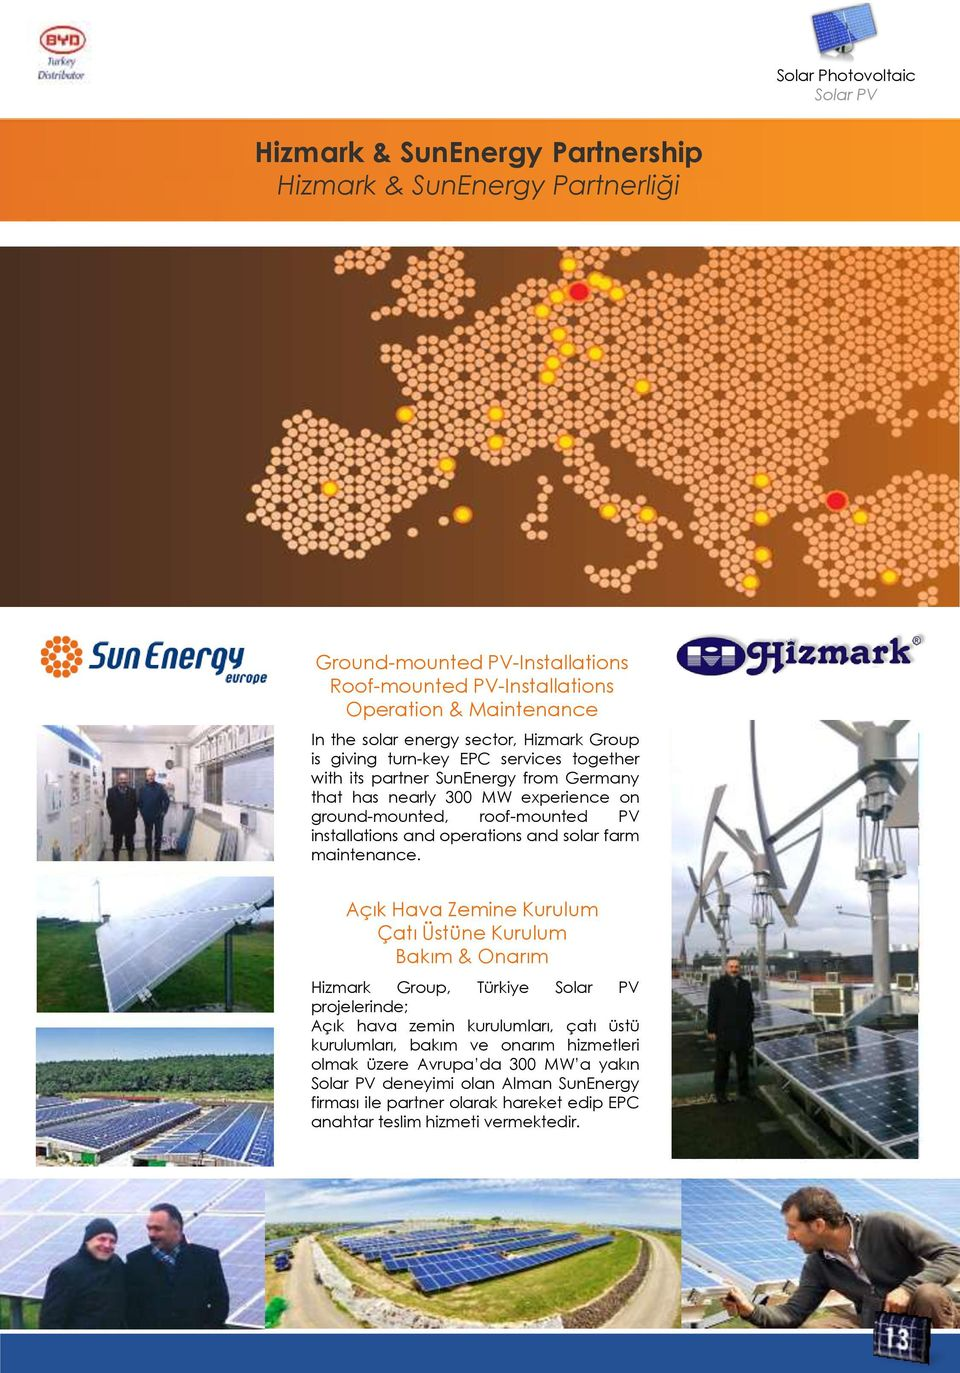 installations and operations and solar farm maintenance.